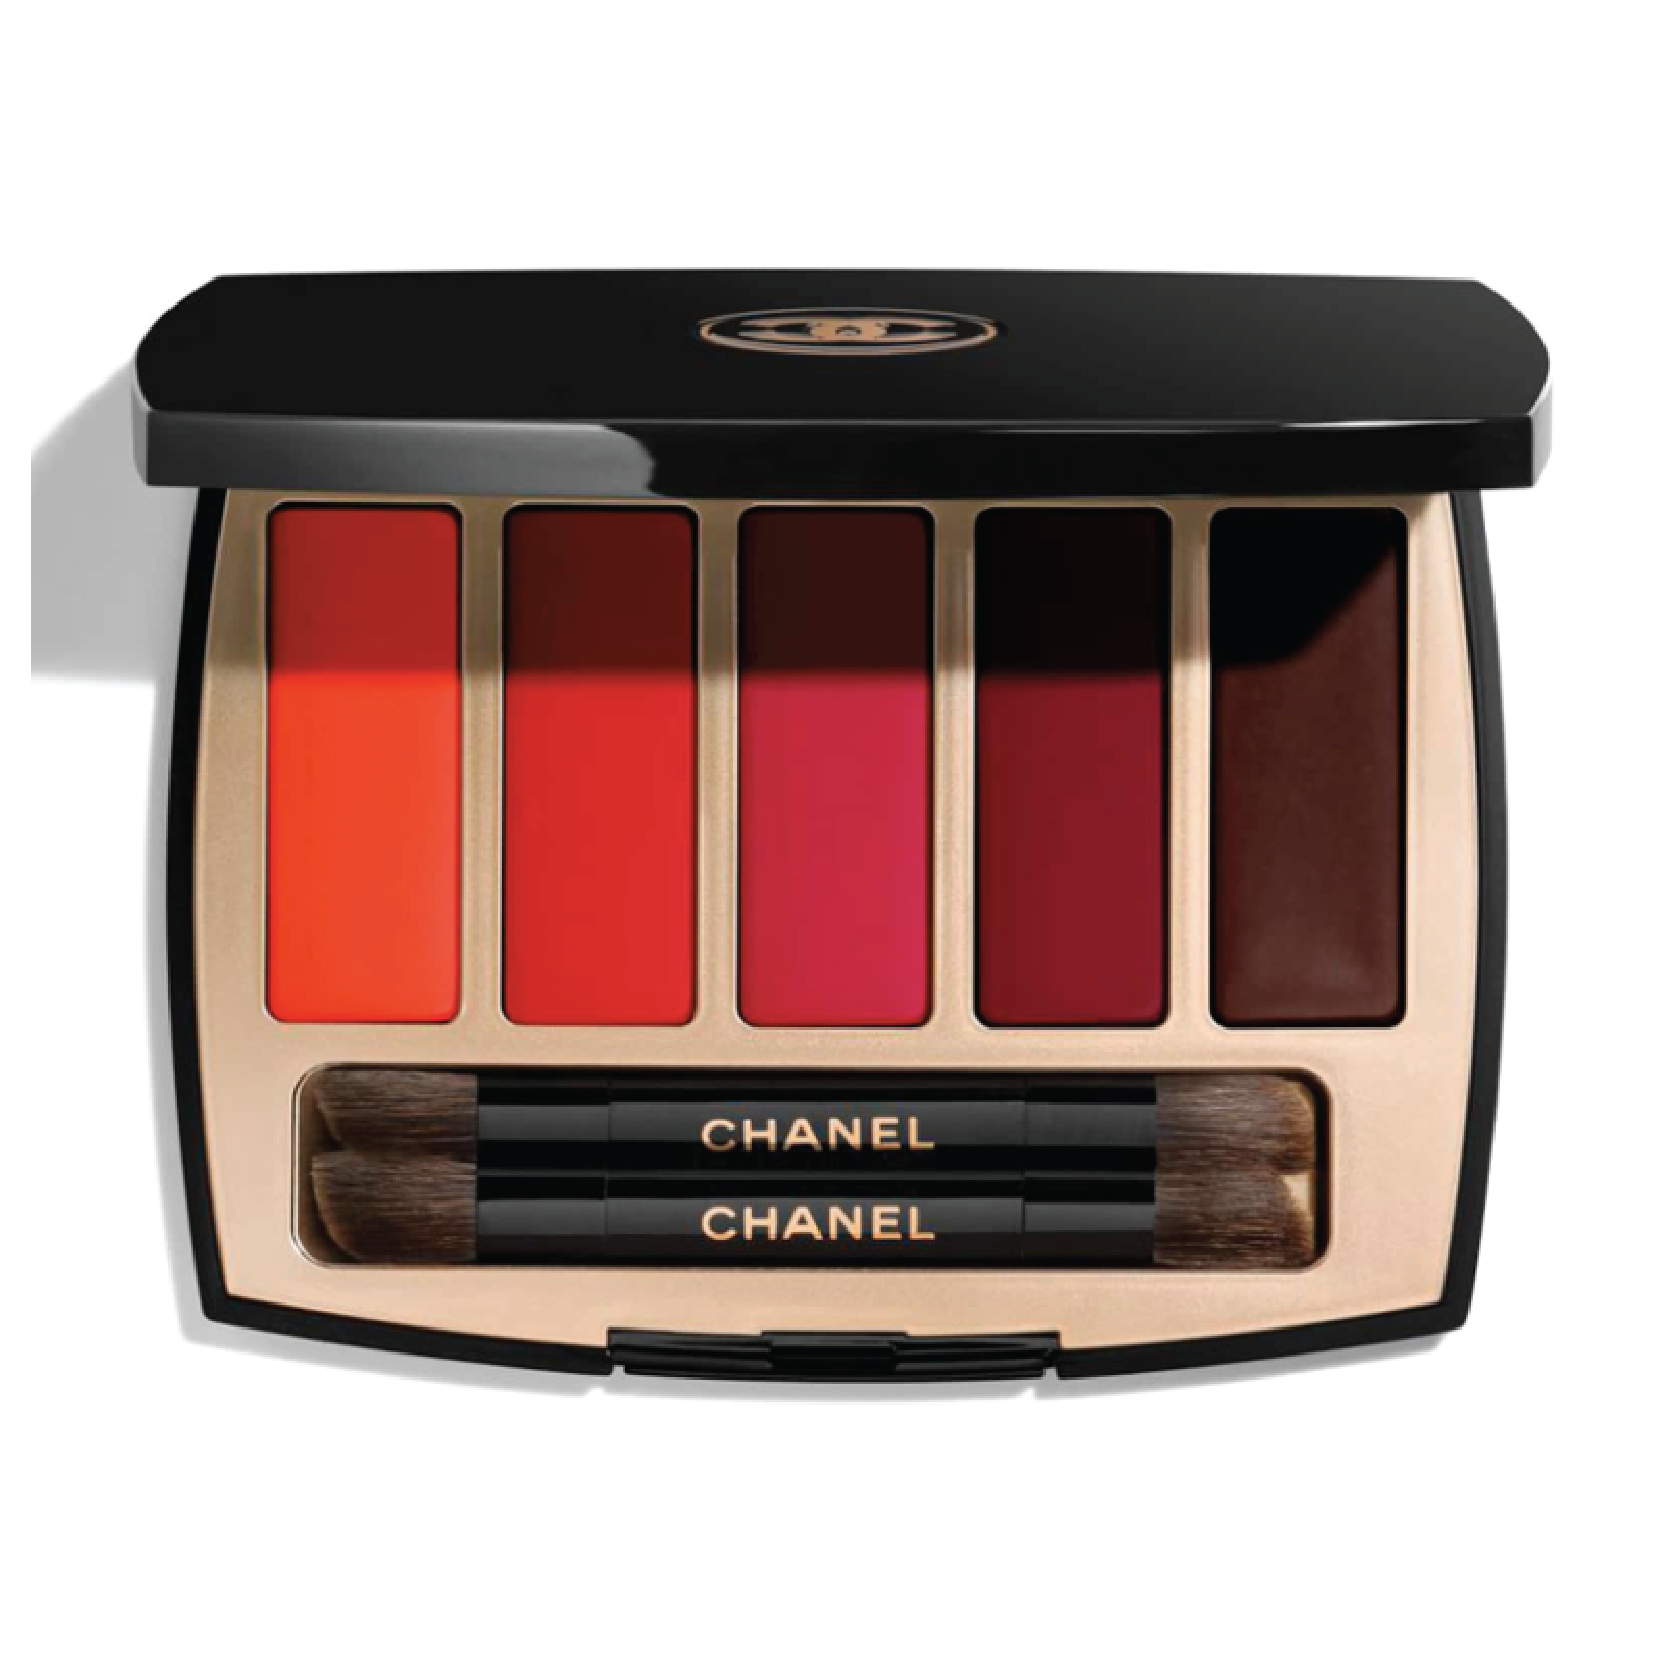 Chanel La Palette Caractére Lip Palette - $60 at NordstromThis Chanel lipstick clutch is the perfect thing to throw in your bag to switch up any look throughout a busy day.